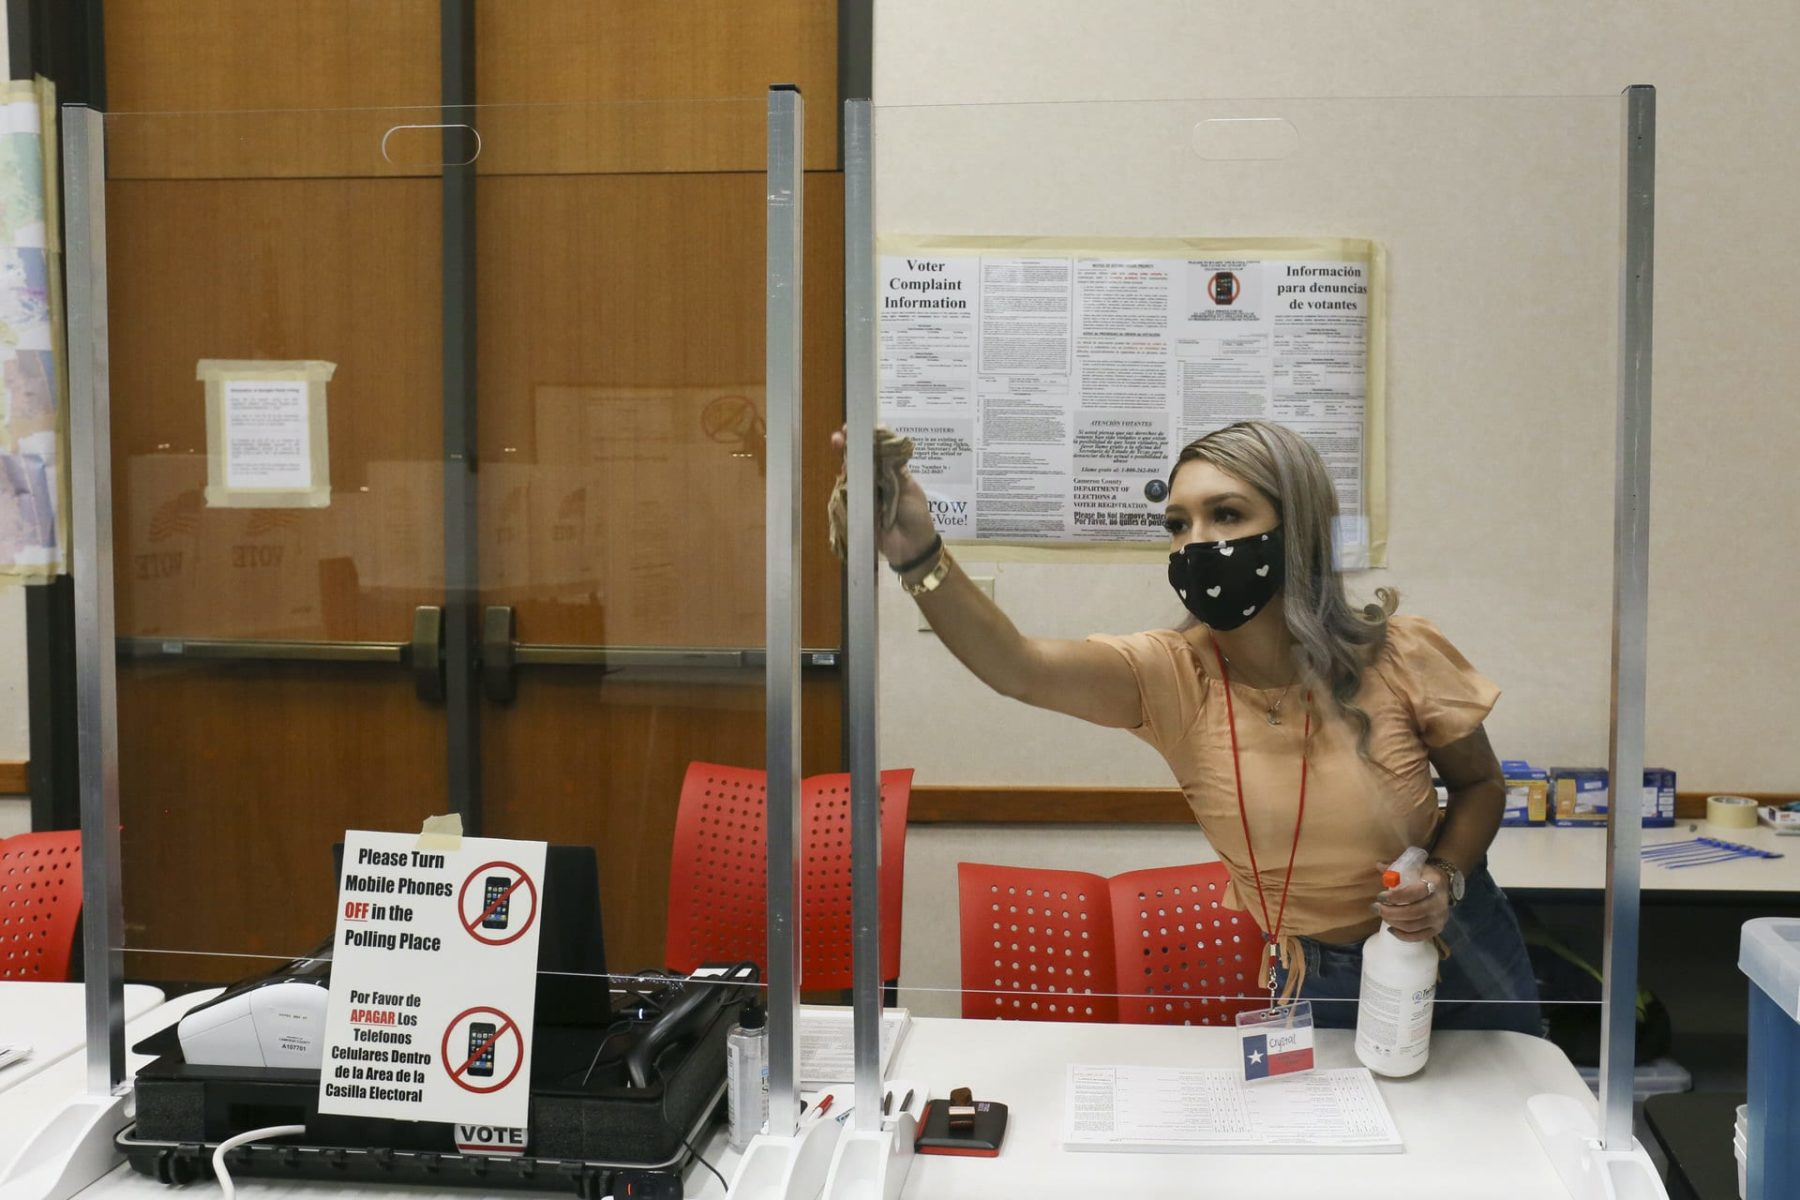 A poll worker cleans a plexiglass barrier at a Texas polling place.